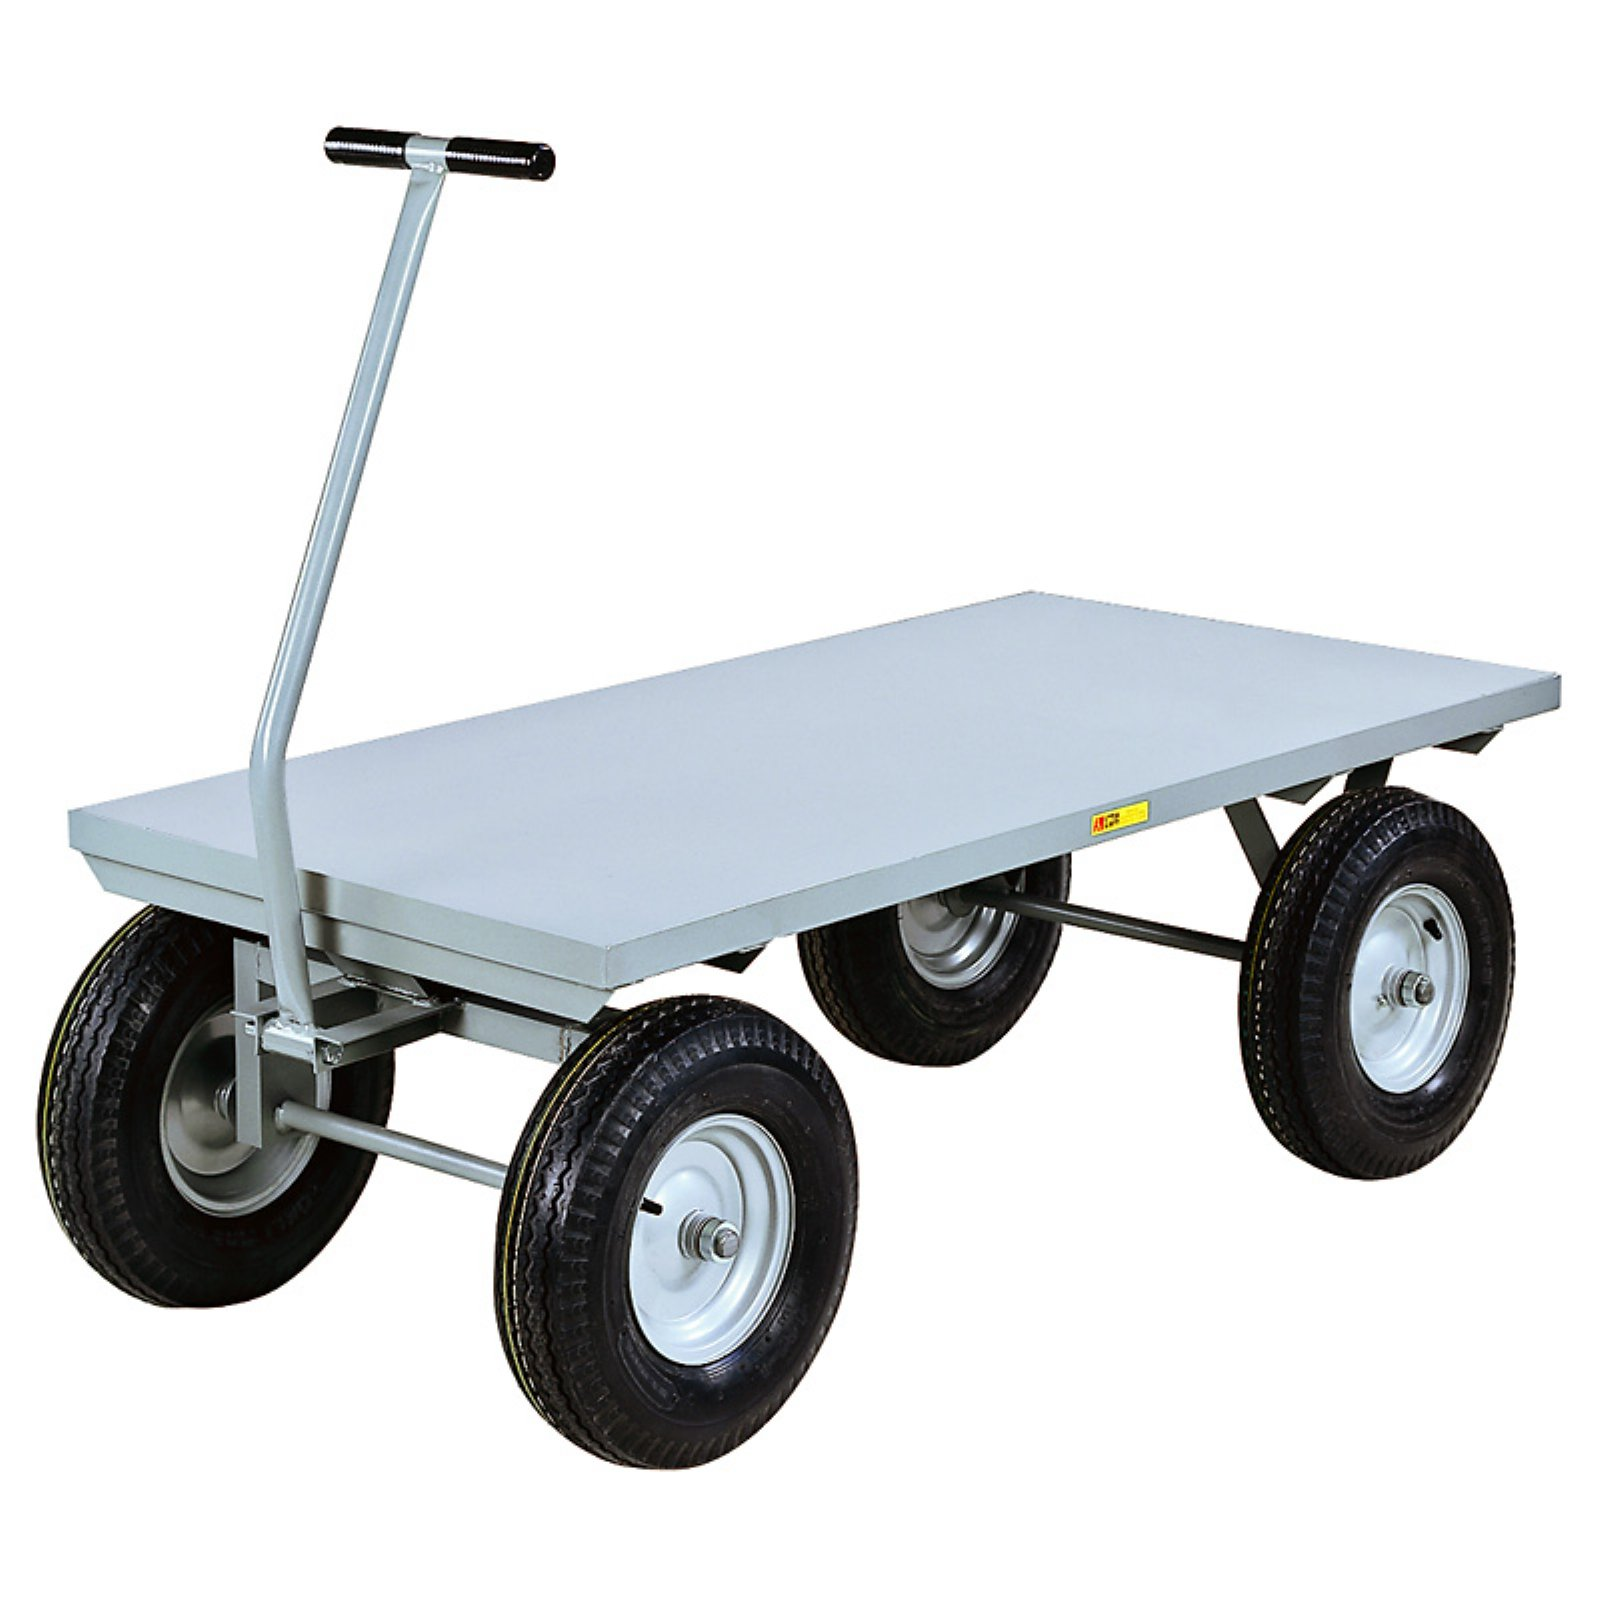 Little Giant Heavy Duty Flush Deck Wagon Cart by Brennan Equipment and Manufacturing Inc